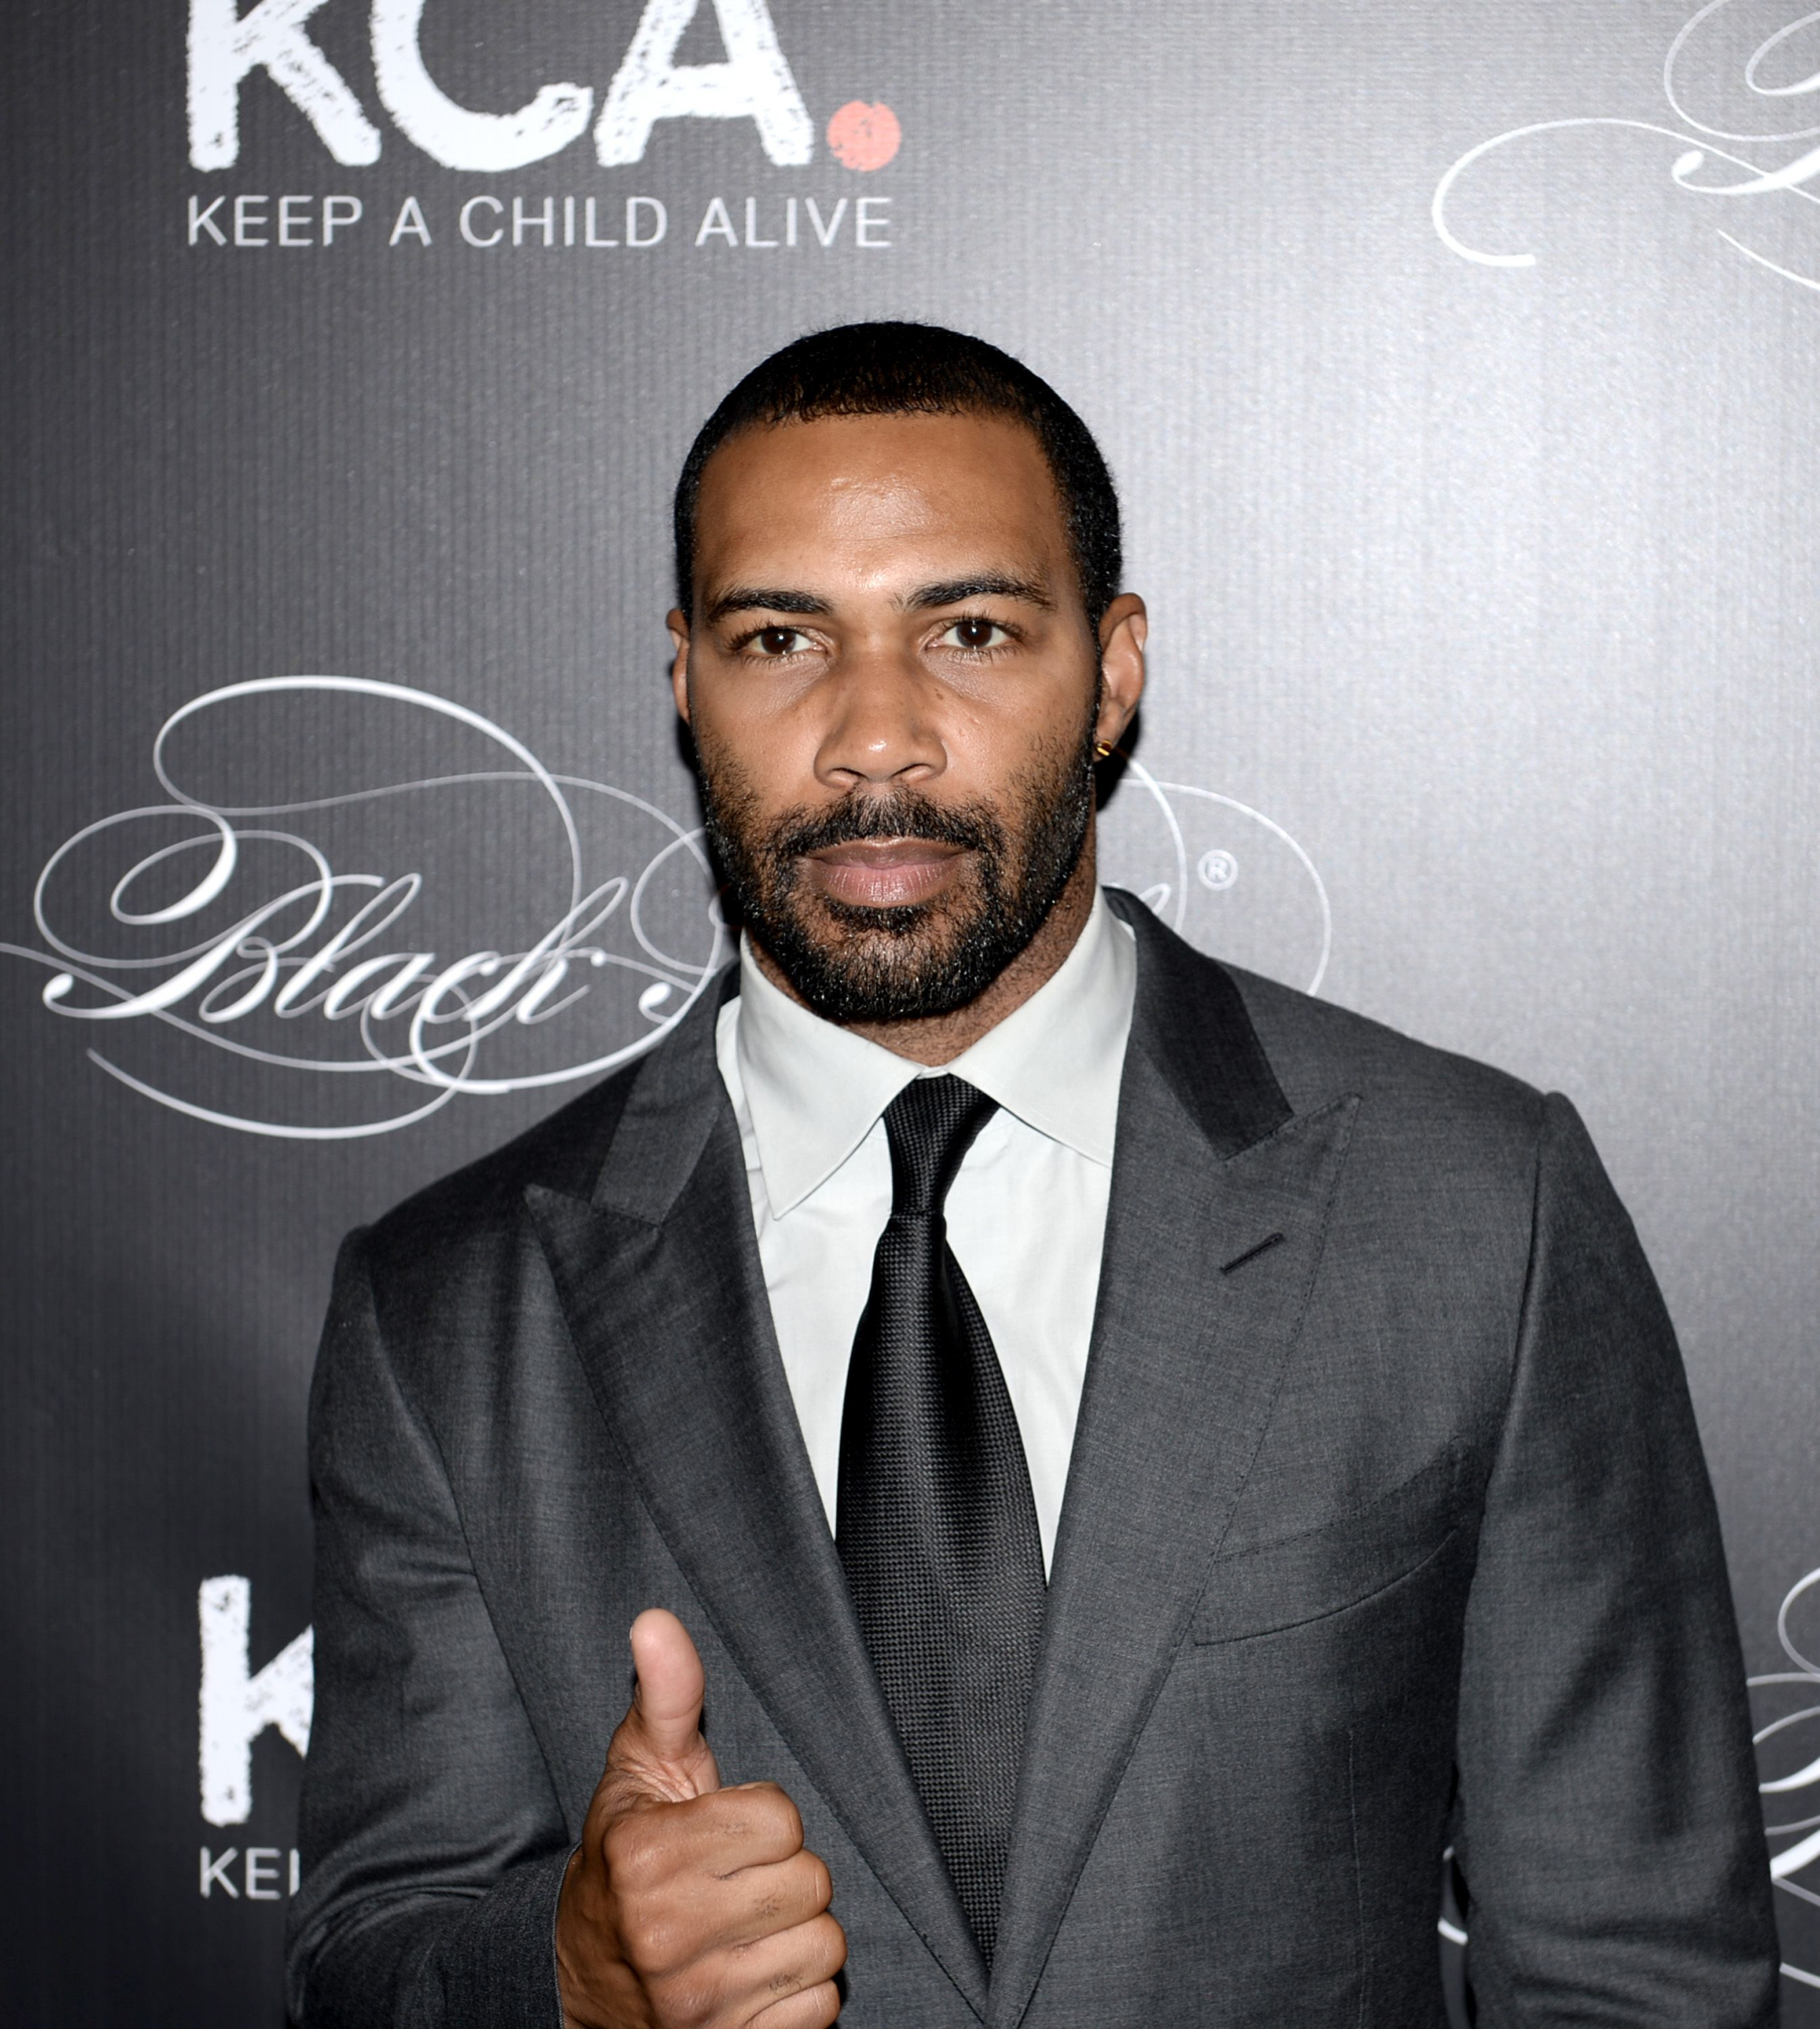 Omari Hardwick at the Keep a Child Alive's 13th annual Black Ball in 2016 in New York City | Source: Getty Images